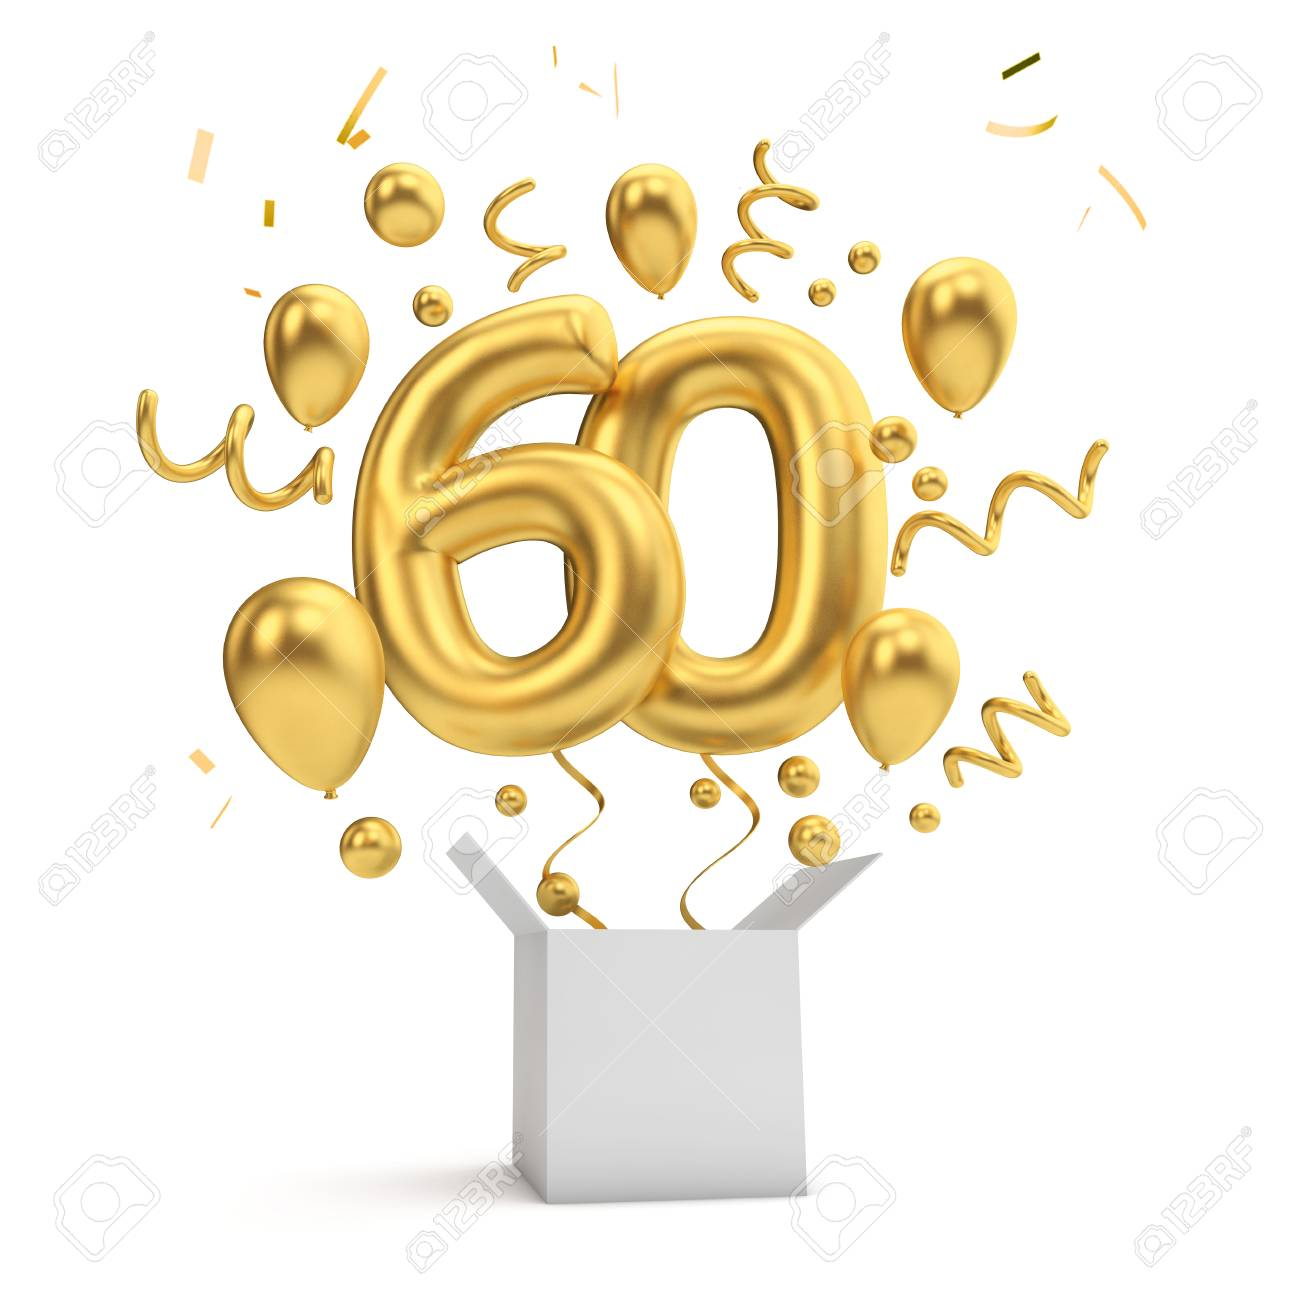 Happy 60th Birthday Gold Surprise Balloon And Box 3d Rendering Stock Photo Picture And Royalty Free Image Image 116483127